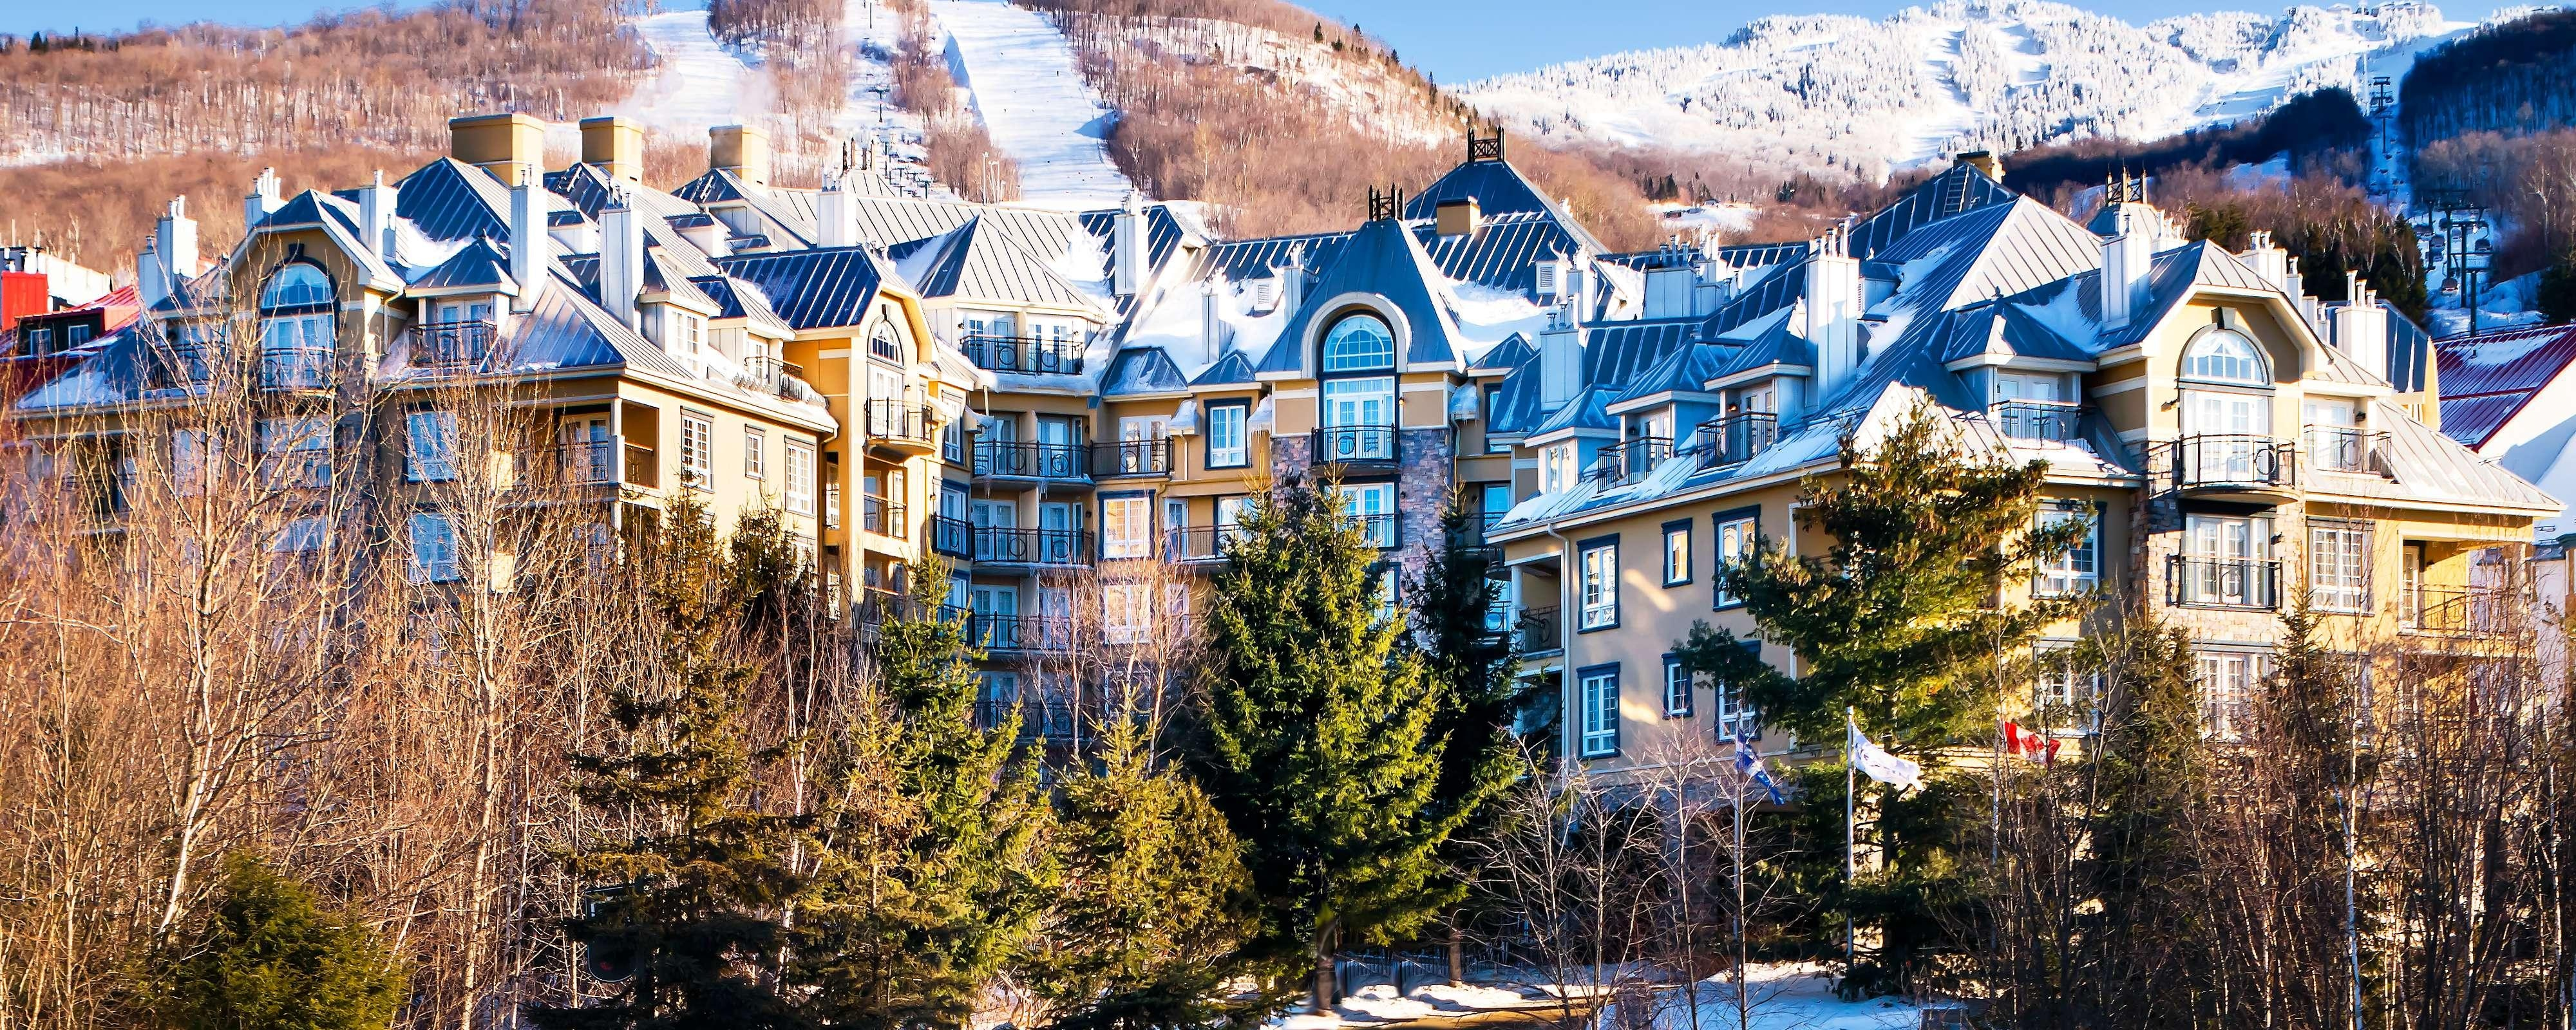 Monterblanc Canada le westin resort & spa, tremblant, quebec - mont tremblant | spg